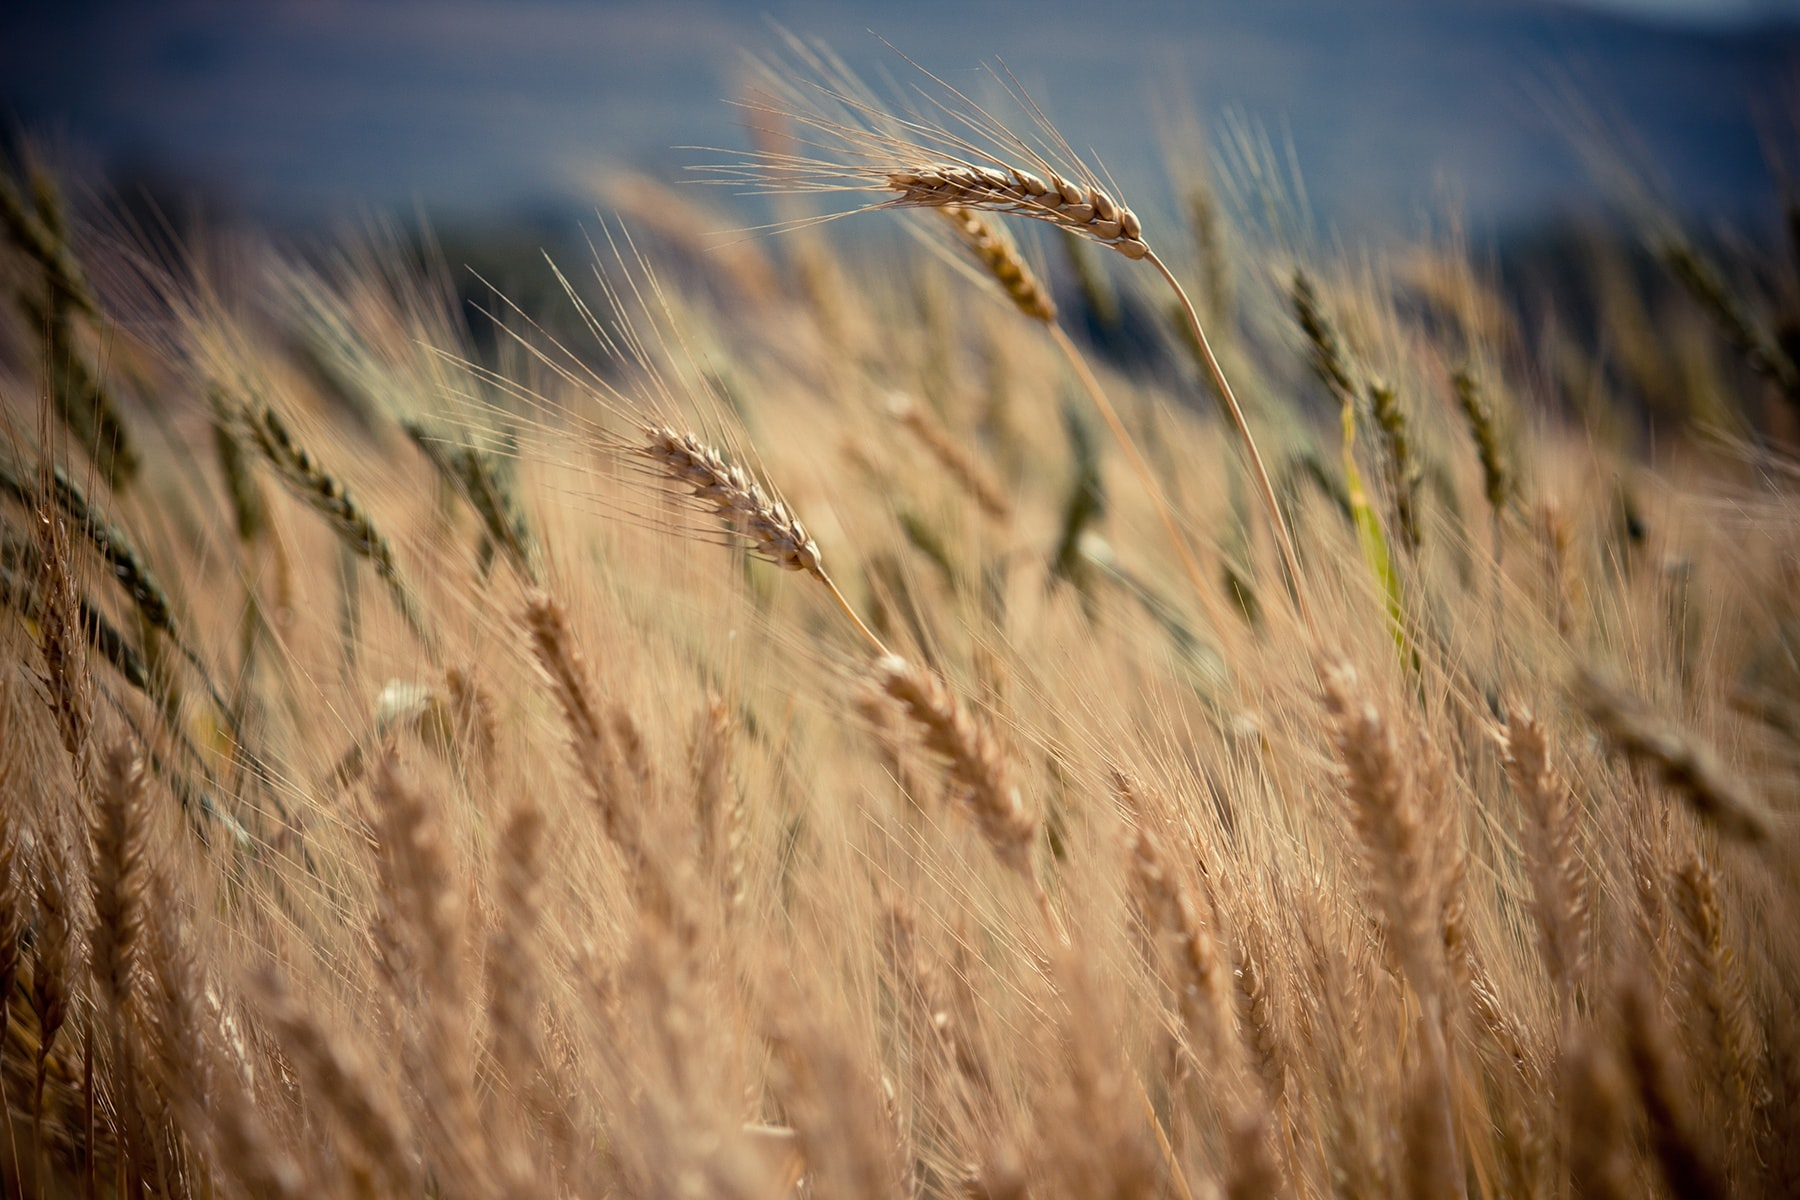 Grains of wheat blow in the wind in a farm field